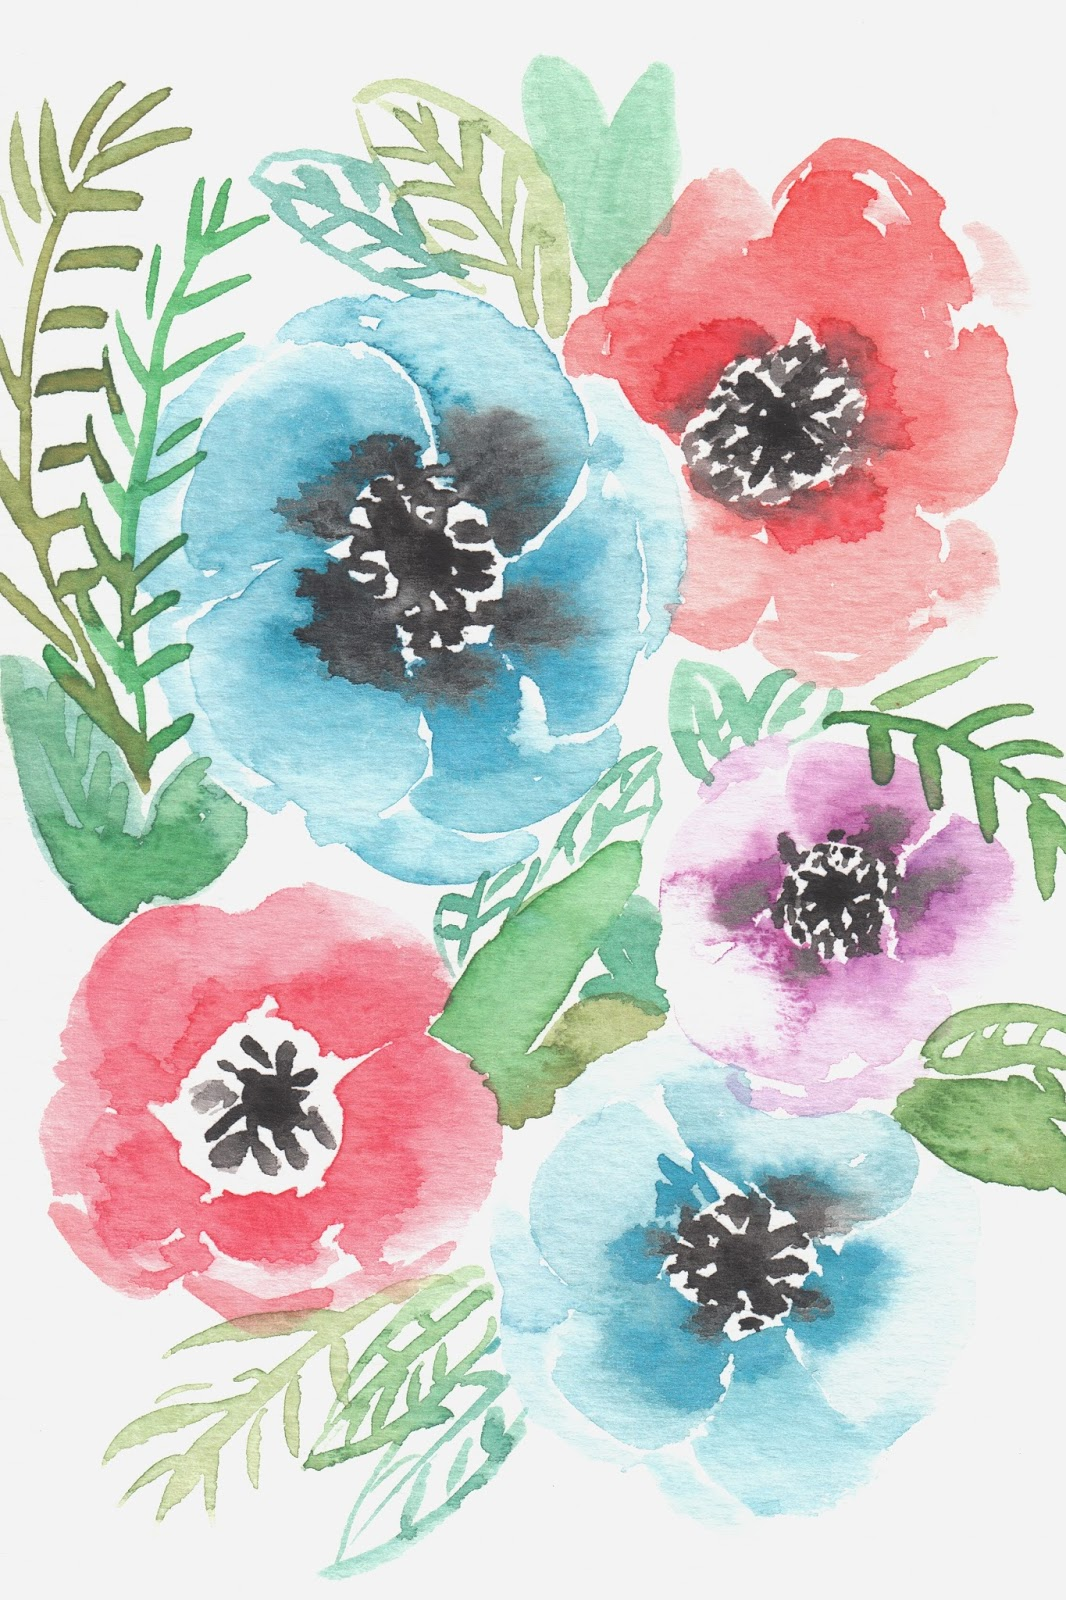 Free illustration watercolor pigment color free image - Free Watercolor Flower Printable For Personal Non Commercial Use Growcreative